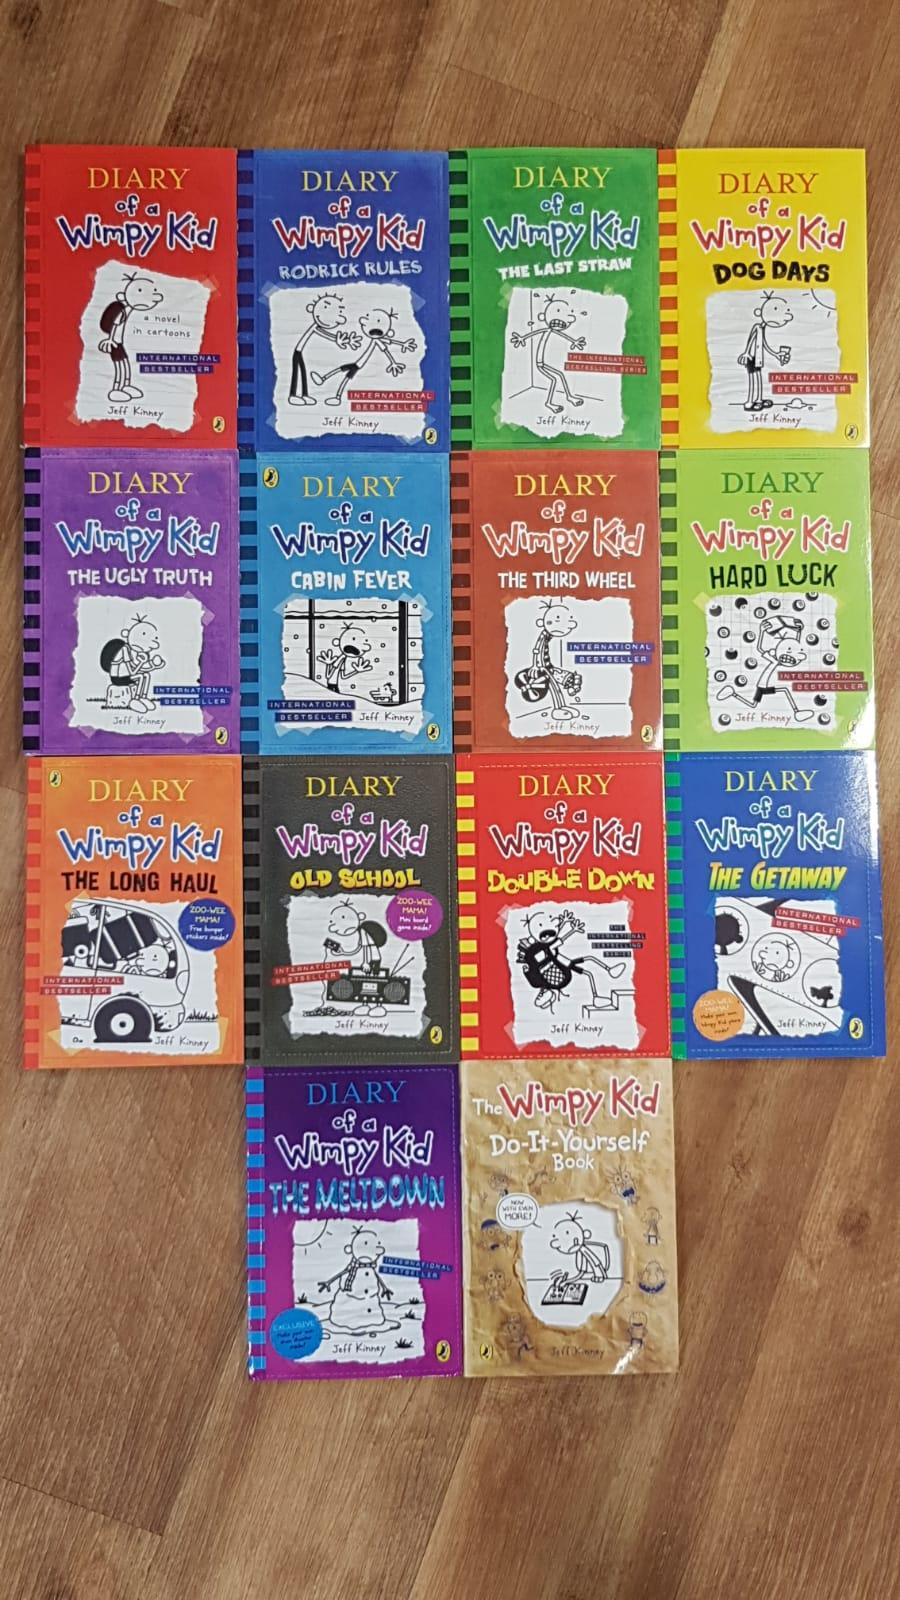 [14 Books] - Diary of a Wimpy Kid